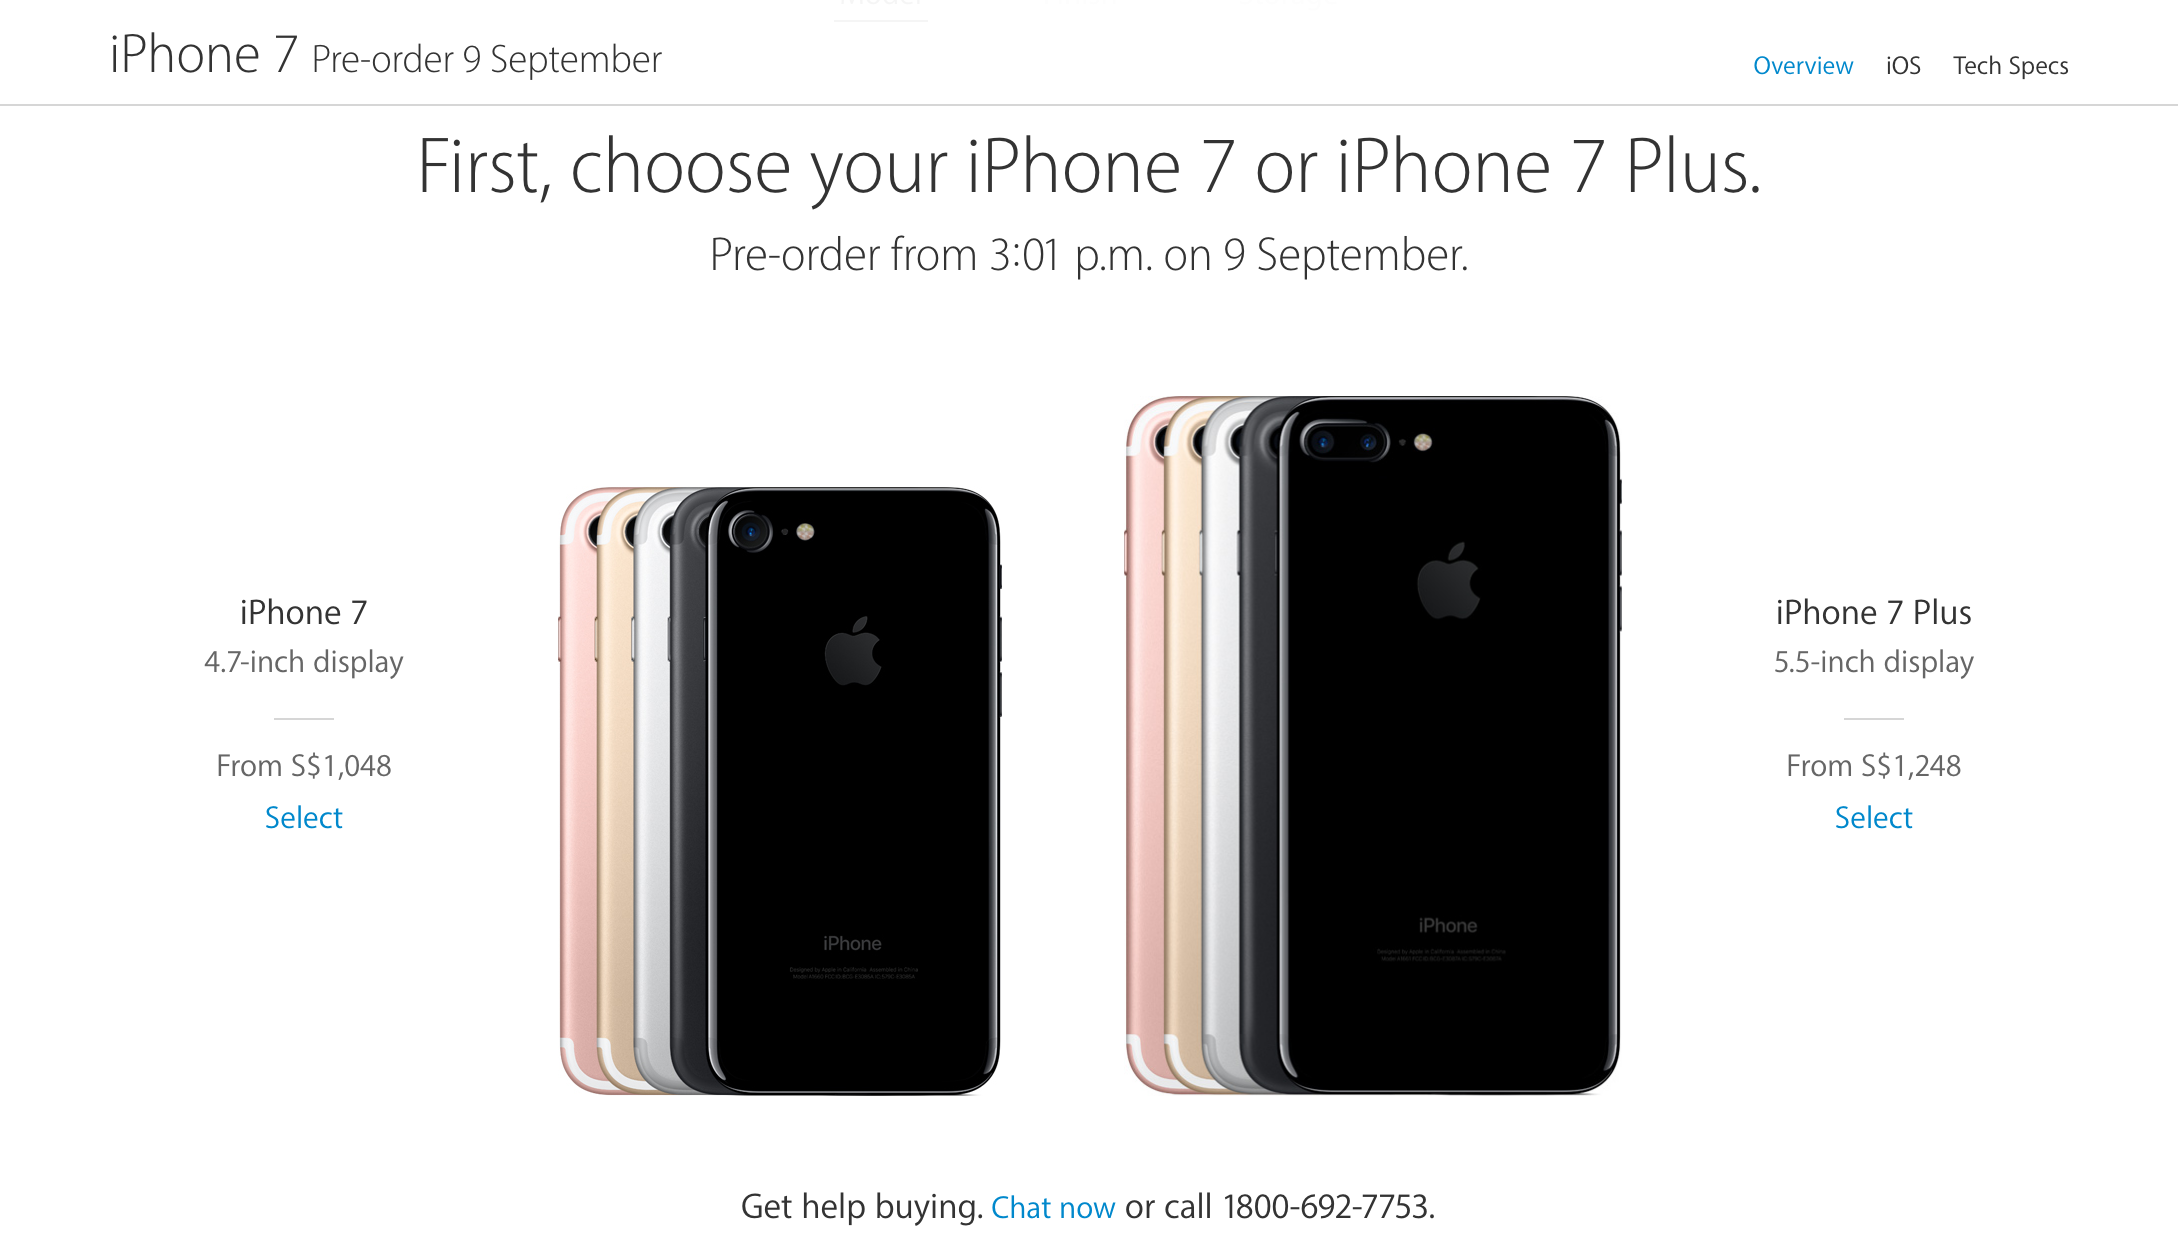 Apple goes official about the iPhone 7 and iPhone 7 Plus